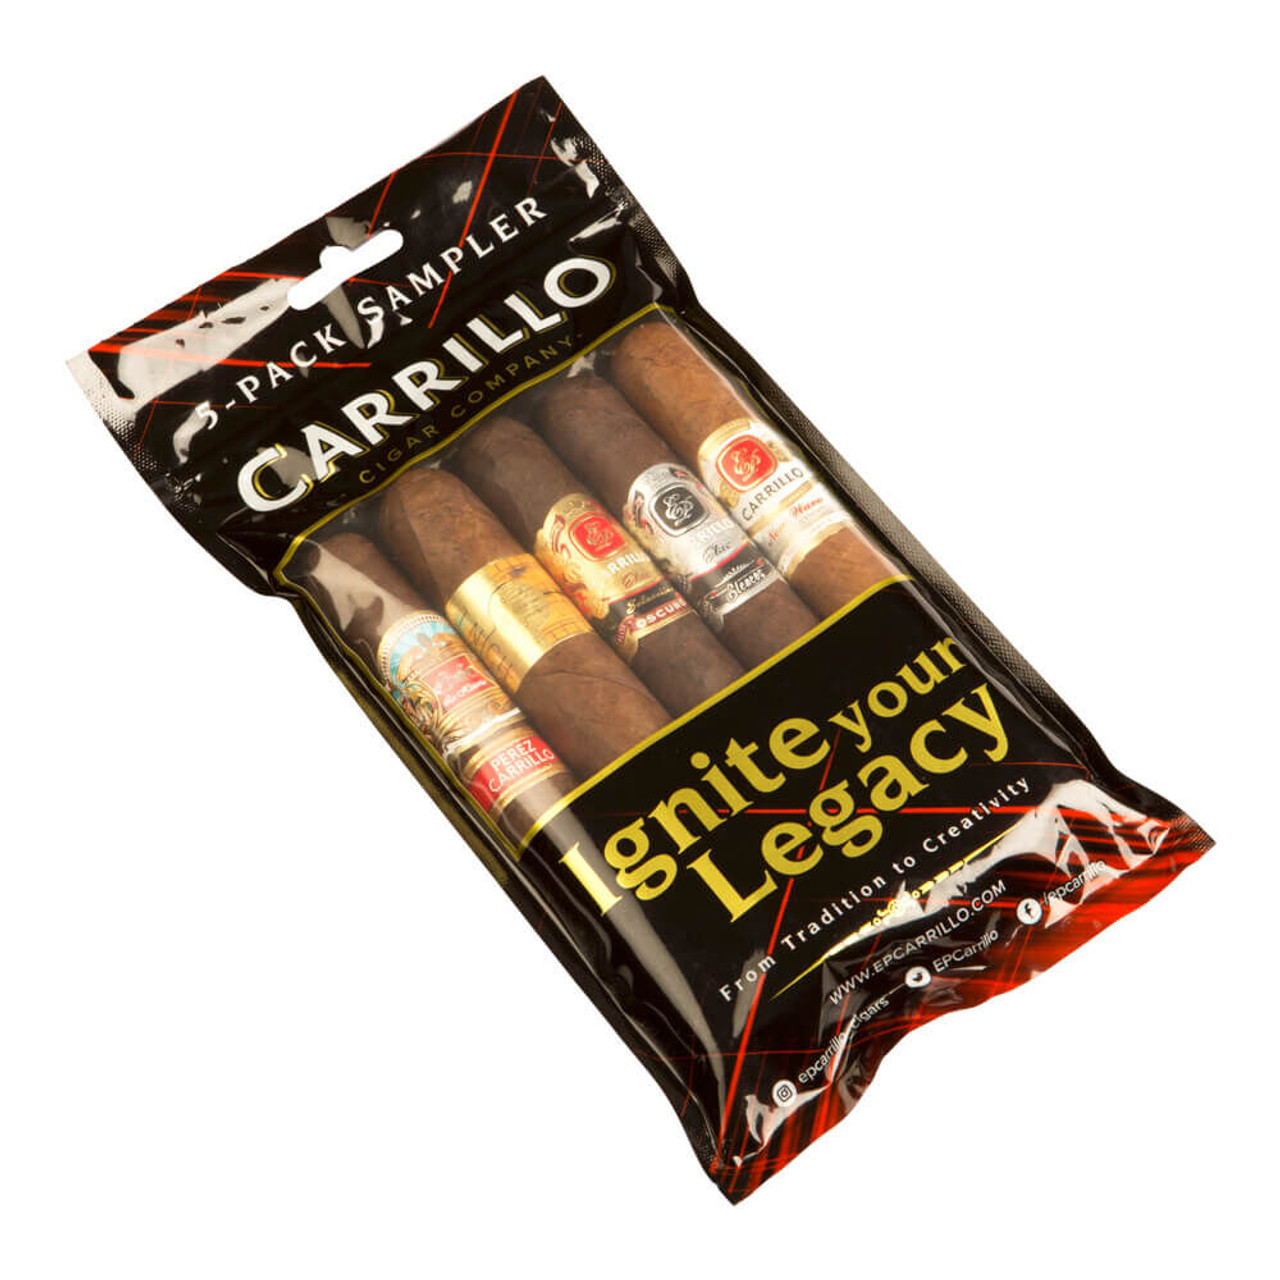 Cigar Samplers E.P. Carrillo Toro Sampler Cigars (Fresh Pack of 5)